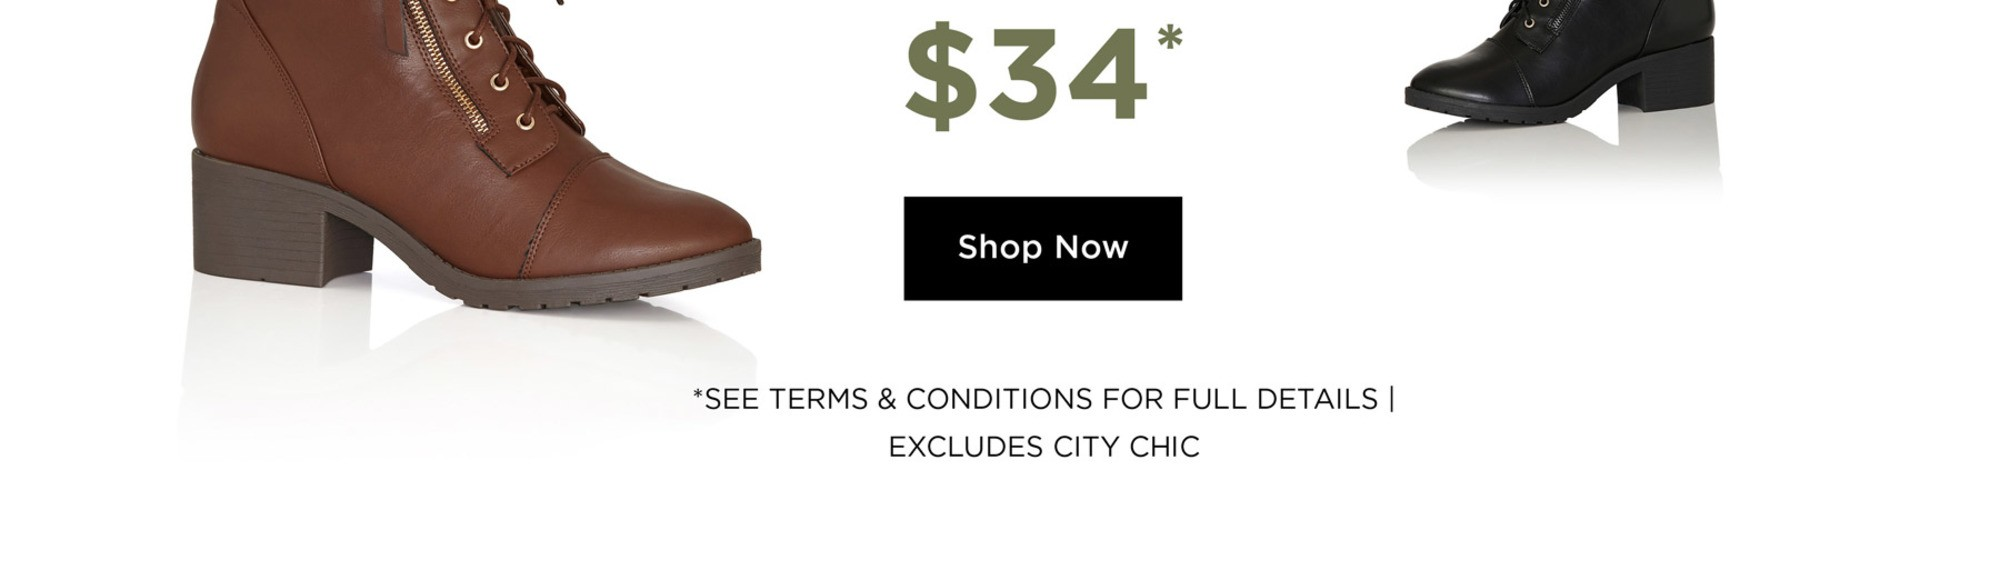 Ankle Boots $34* - *See Terms & Conditions for full details, excludes City Chic - SHOP NOW